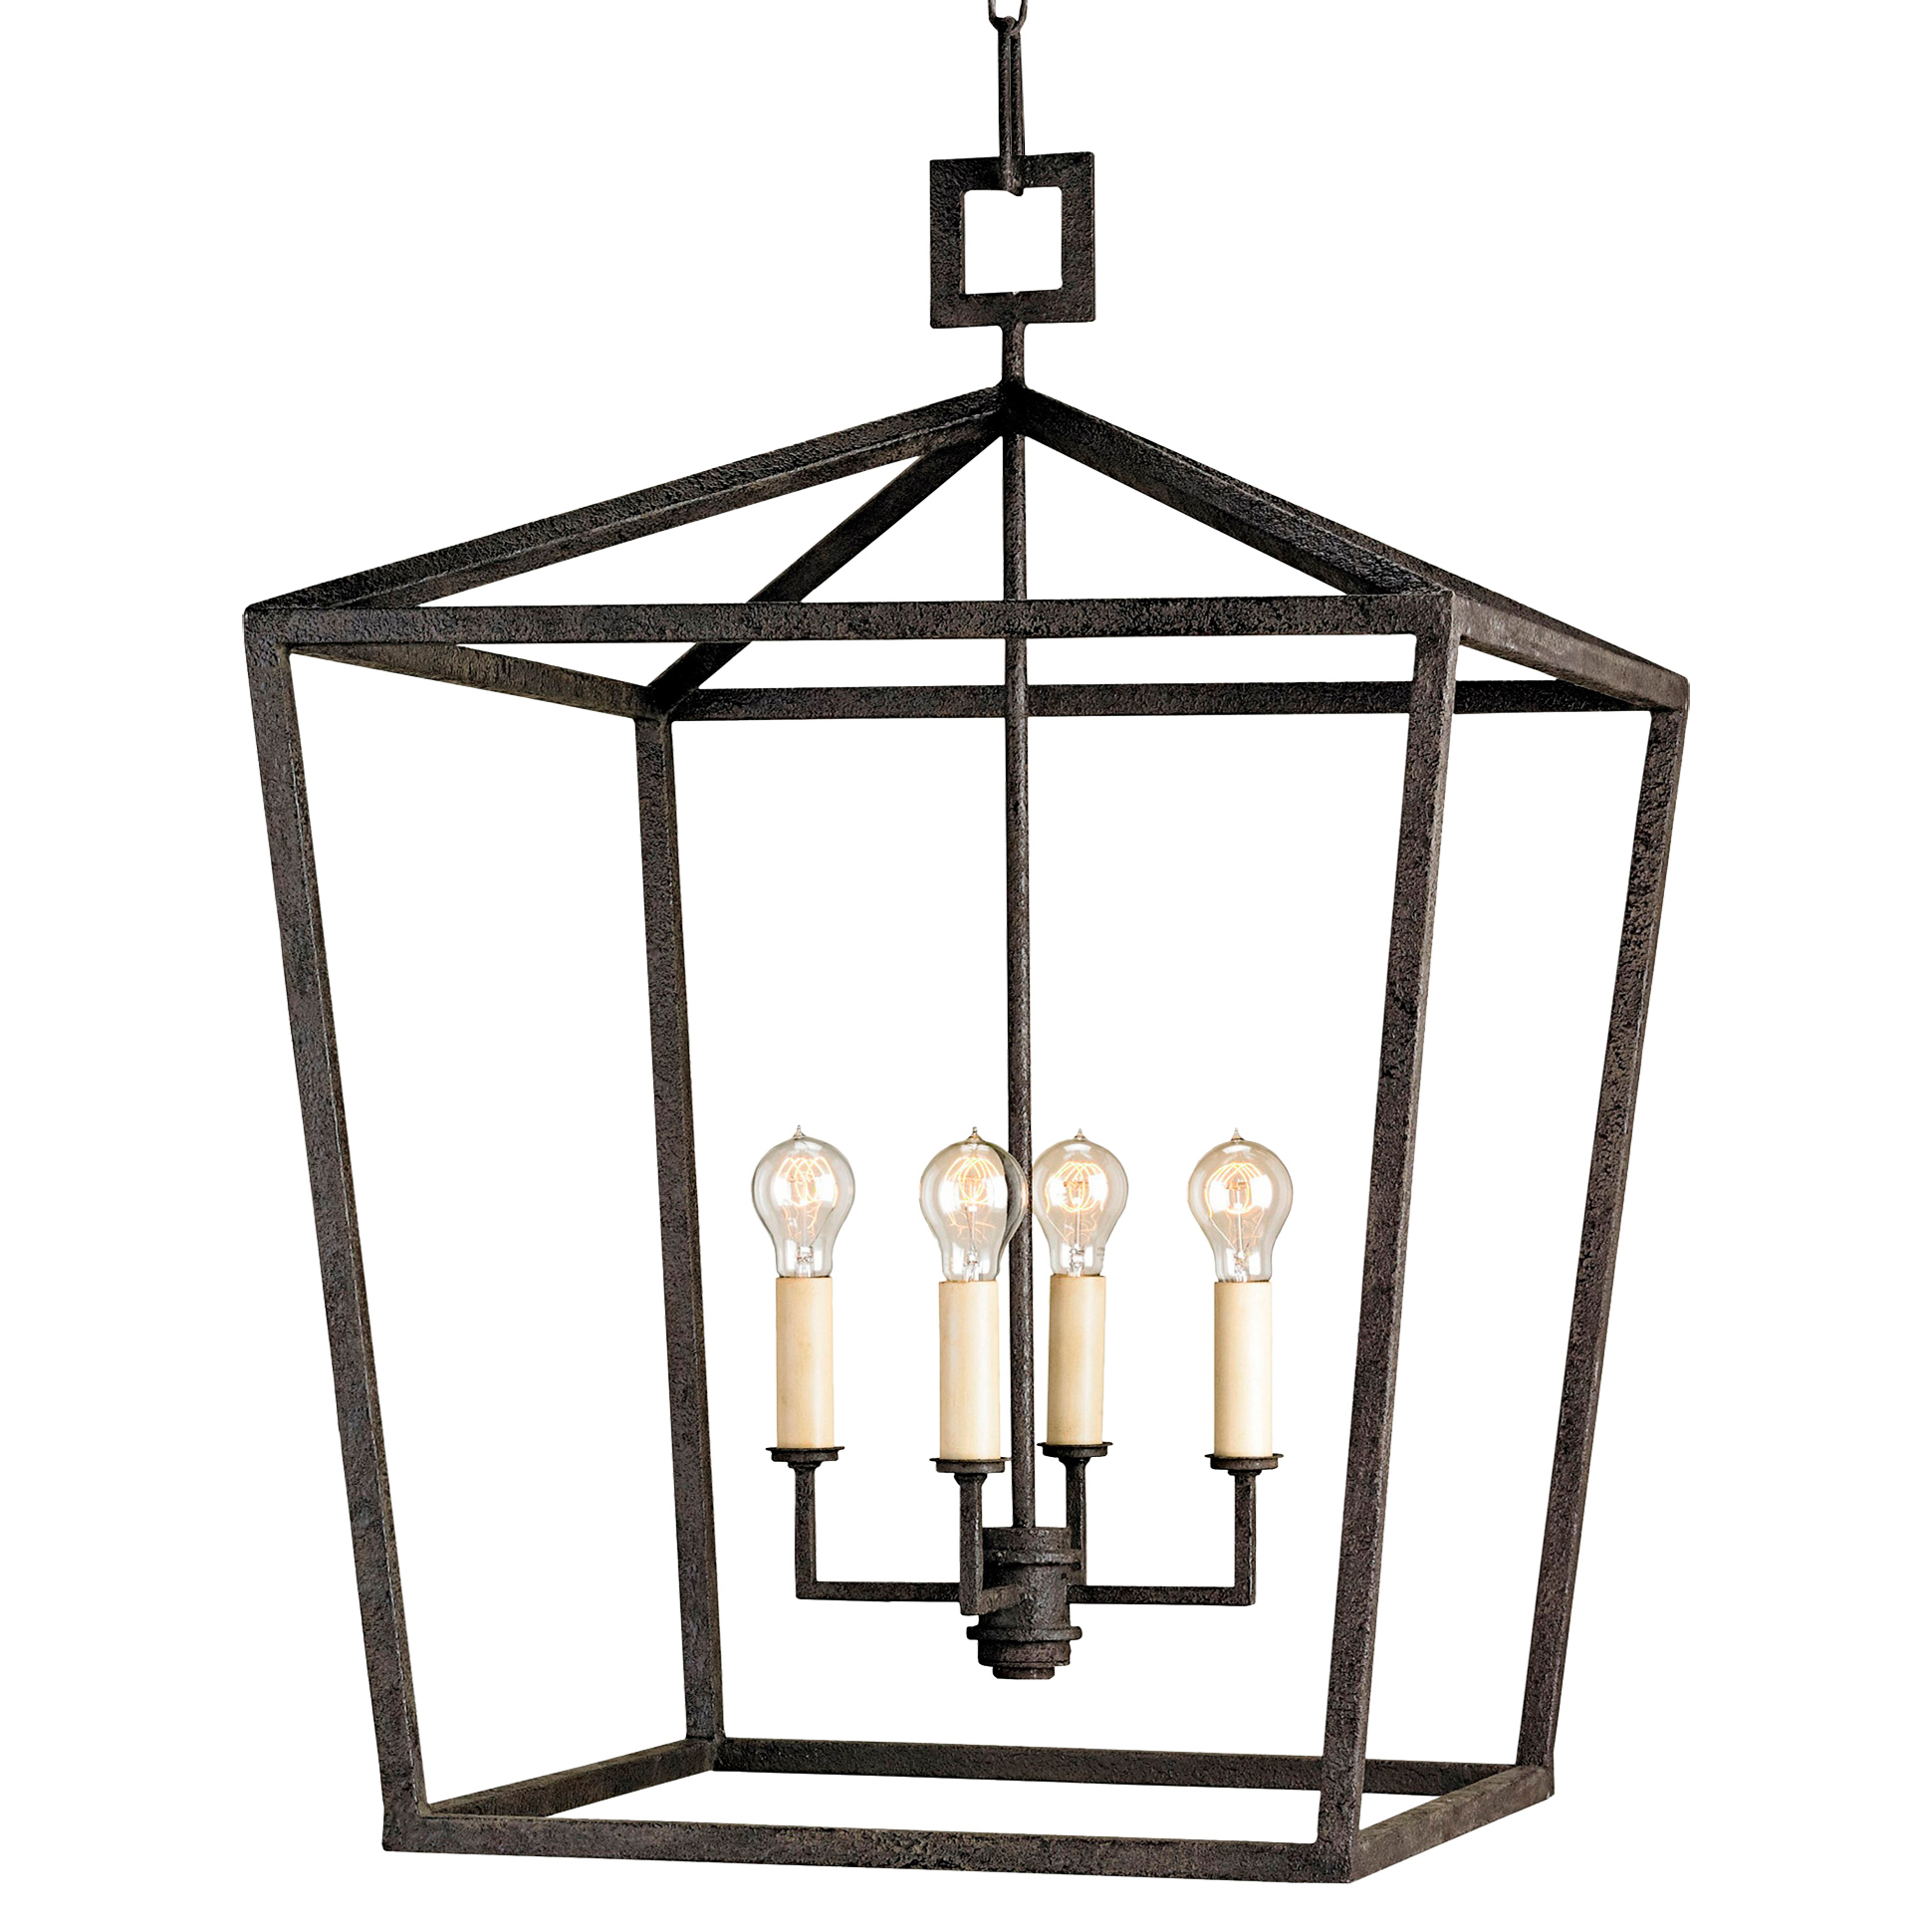 Darden 4 Light Industrial Chic Open Lantern Pendant